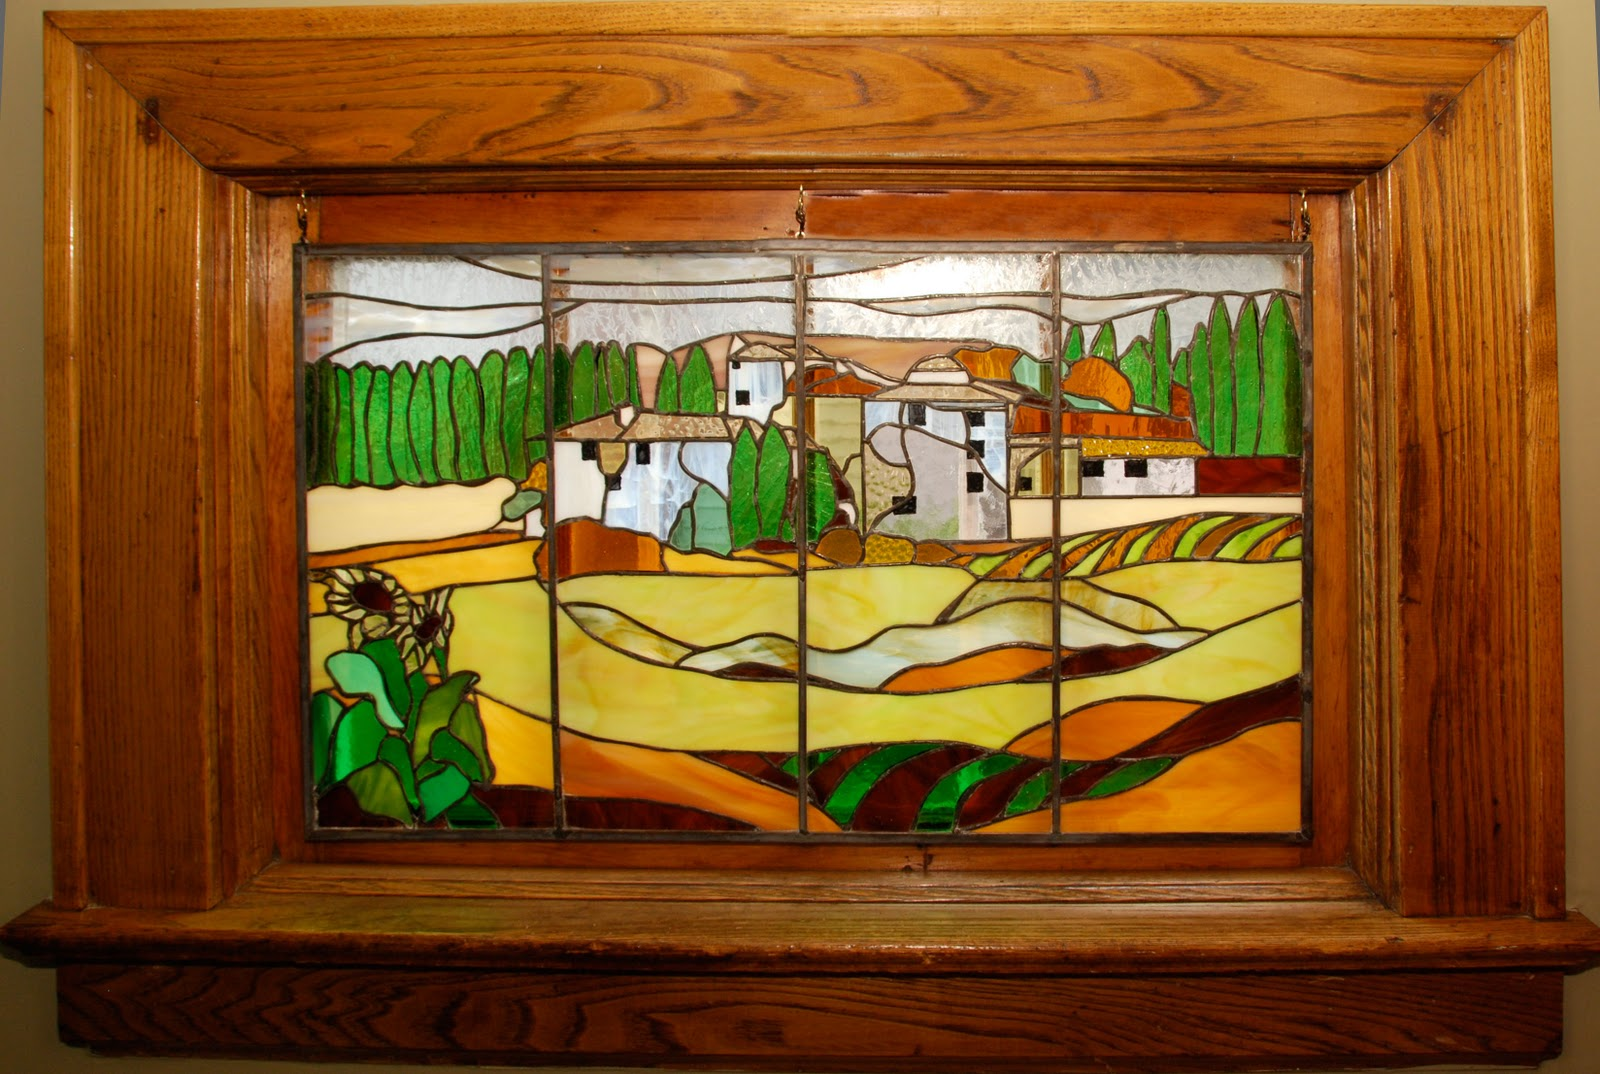 Boehm Stained Glass Blog Art Deco Stained Glass Window